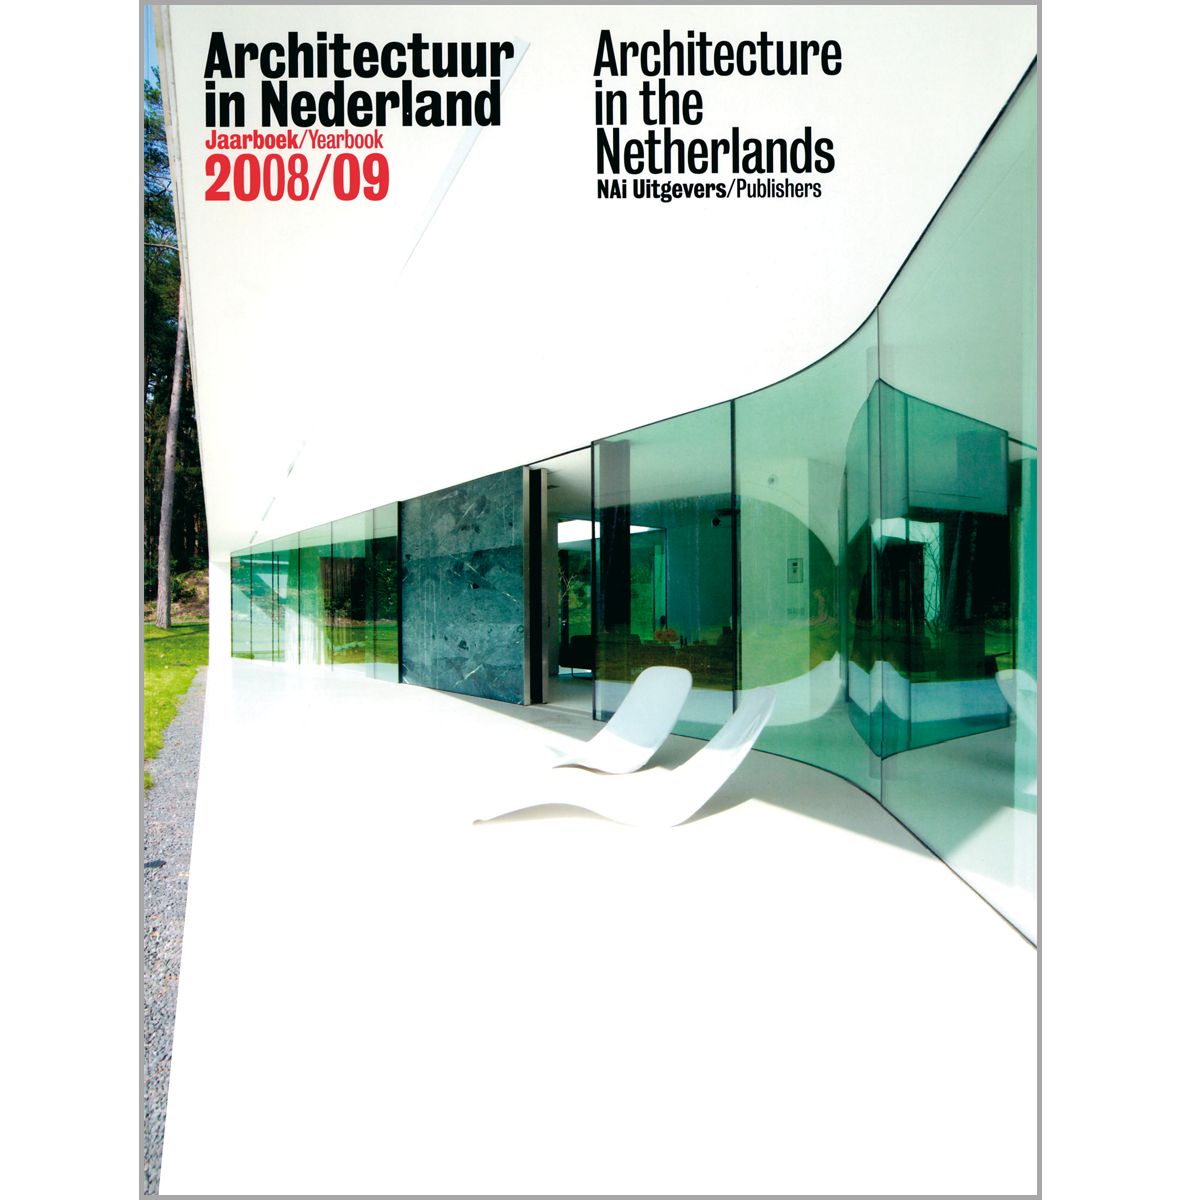 Architecture in the Netherlands 2008/09